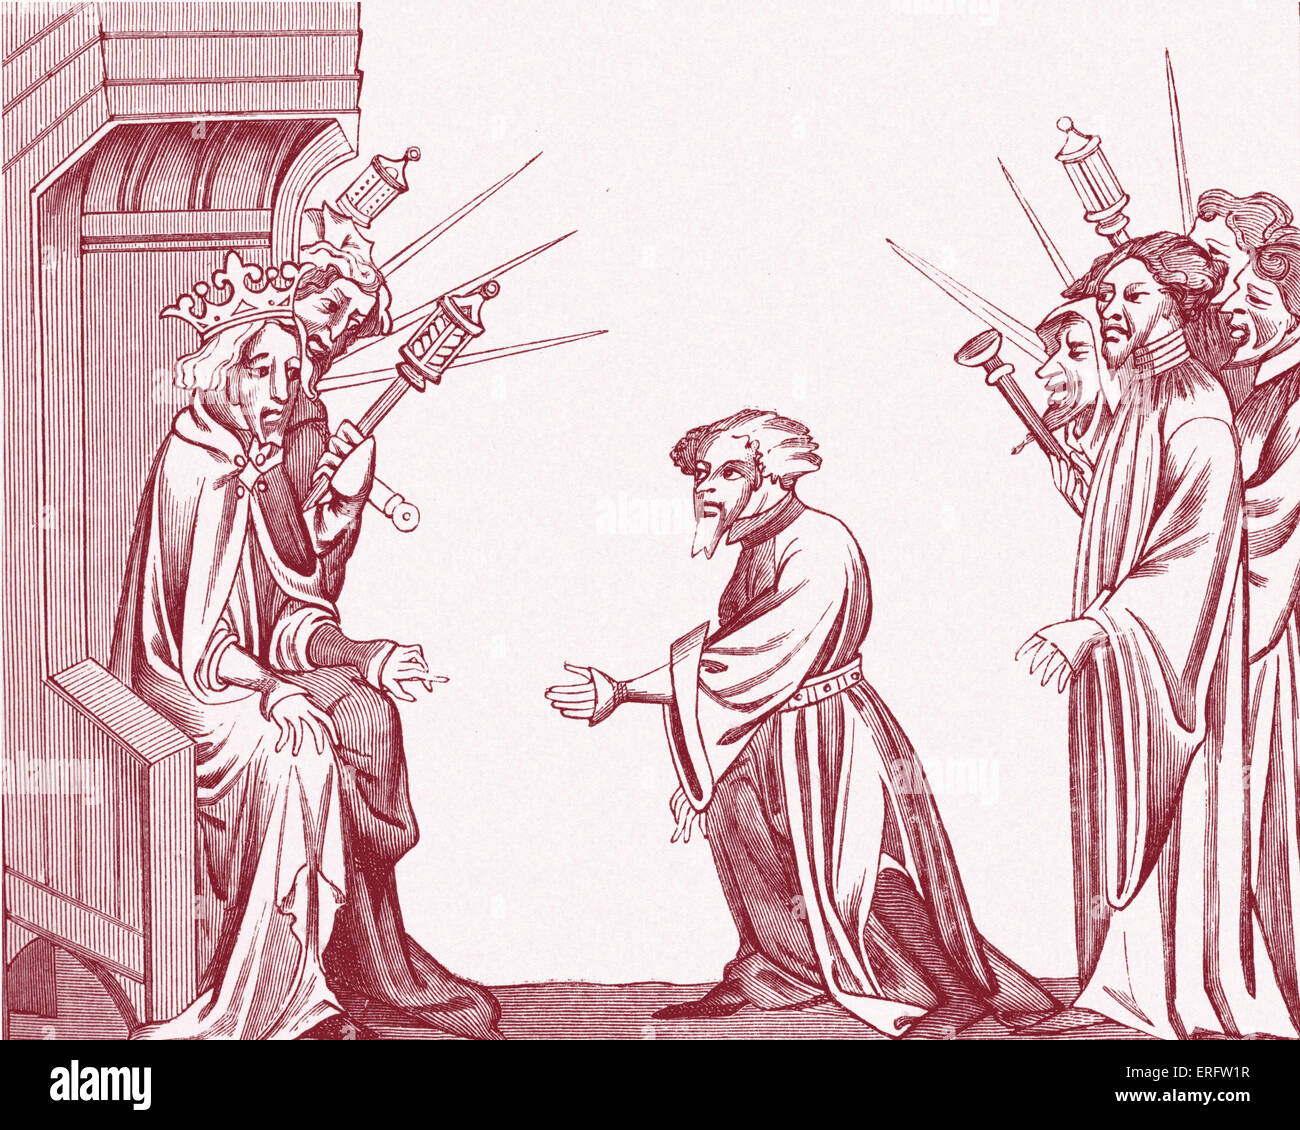 King Charlemagne receiving the Oath of Fidelity and Homage from one of his great Feudatories or High Barons. Copy - Stock Image